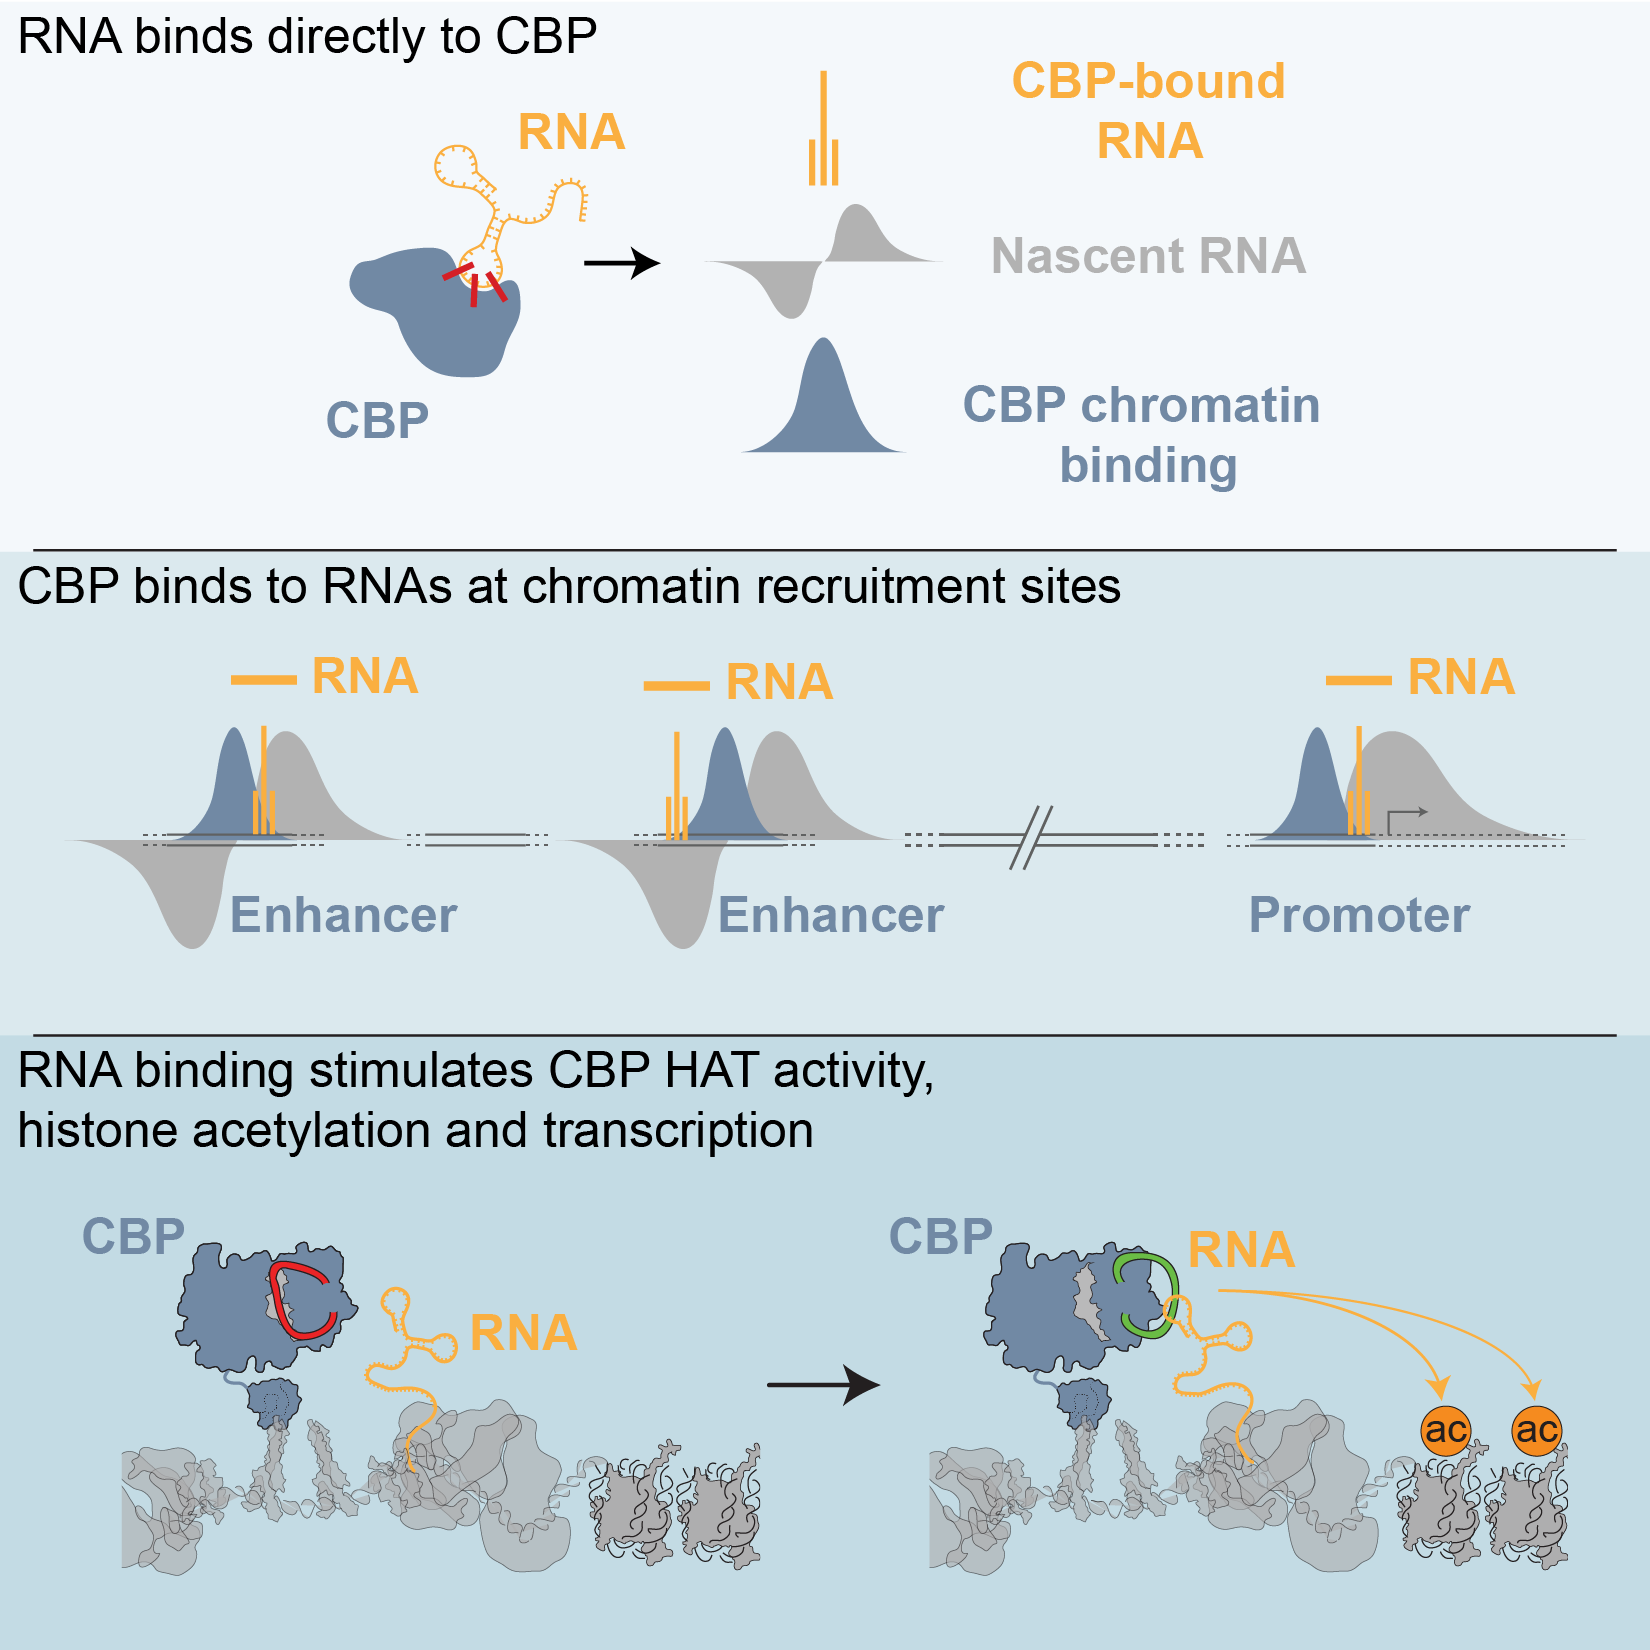 RNA Binding to CBP Stimulates Histone Acetylation and Transcription. - Daniel A. Bose, Greg Donahue, Danny Reinberg, Ramin Sheikhattar, Roberto Bonasio, Shelley L. Berger. Cell 168, 135–149.e22 (2017)In our most recent paper, we showed how RNA binding to CBP could modulate CBPs enzymatic activity to control histone acetylation and gene expression. The model explains how localised transcription of eRNAs could tailor the activity of sub-populations of CBP bound at enhancers, leading to functional diversity in enhancer activity.(manuscript also available here)